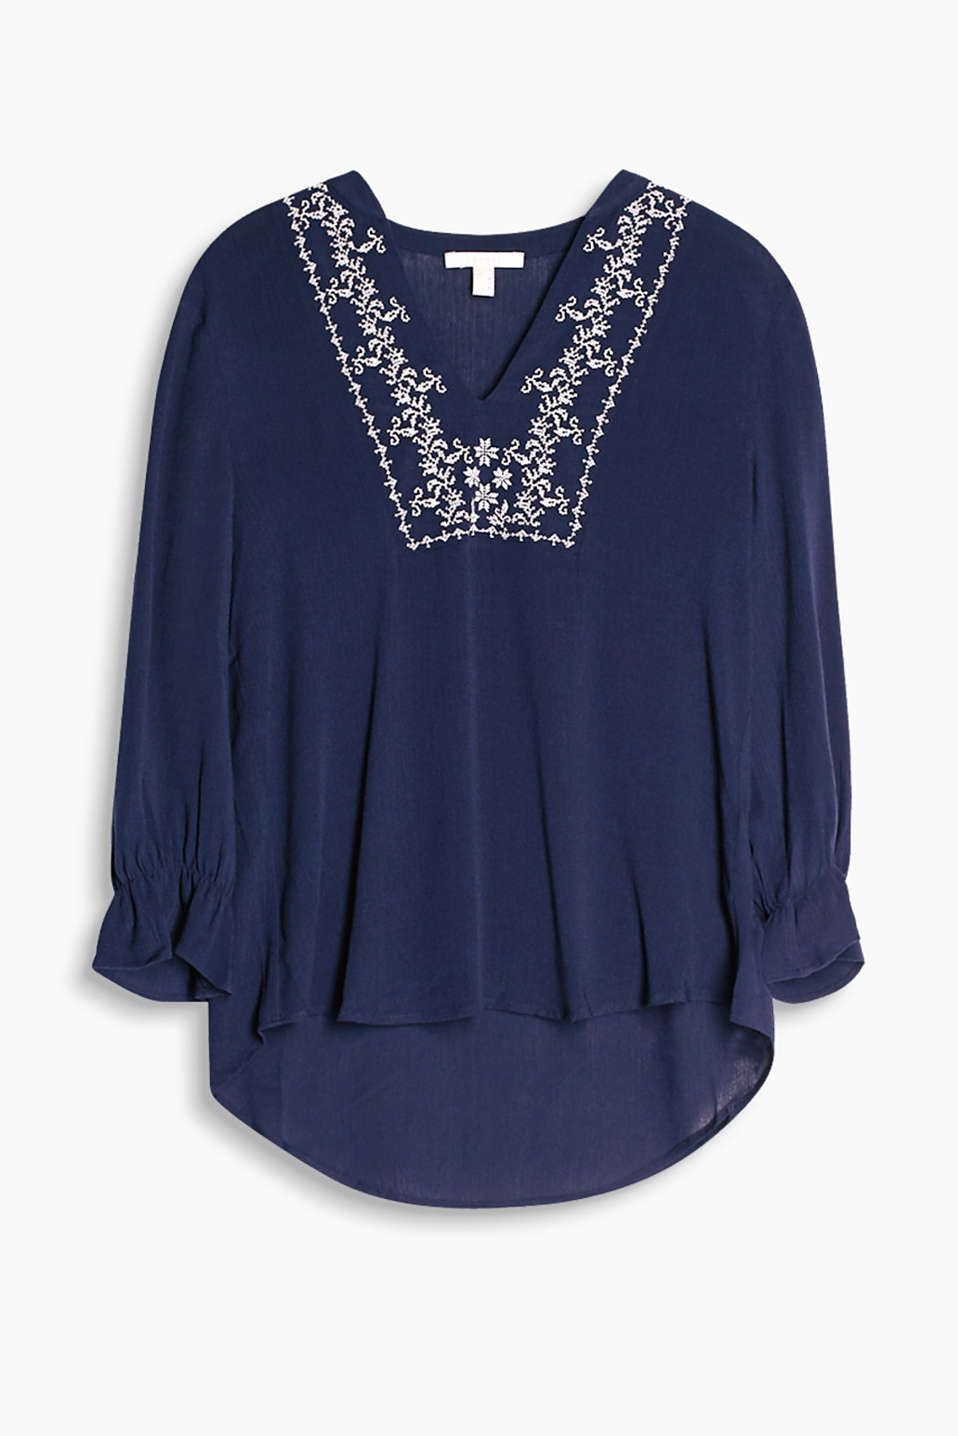 Floaty tunic with an embroidered neckline yoke